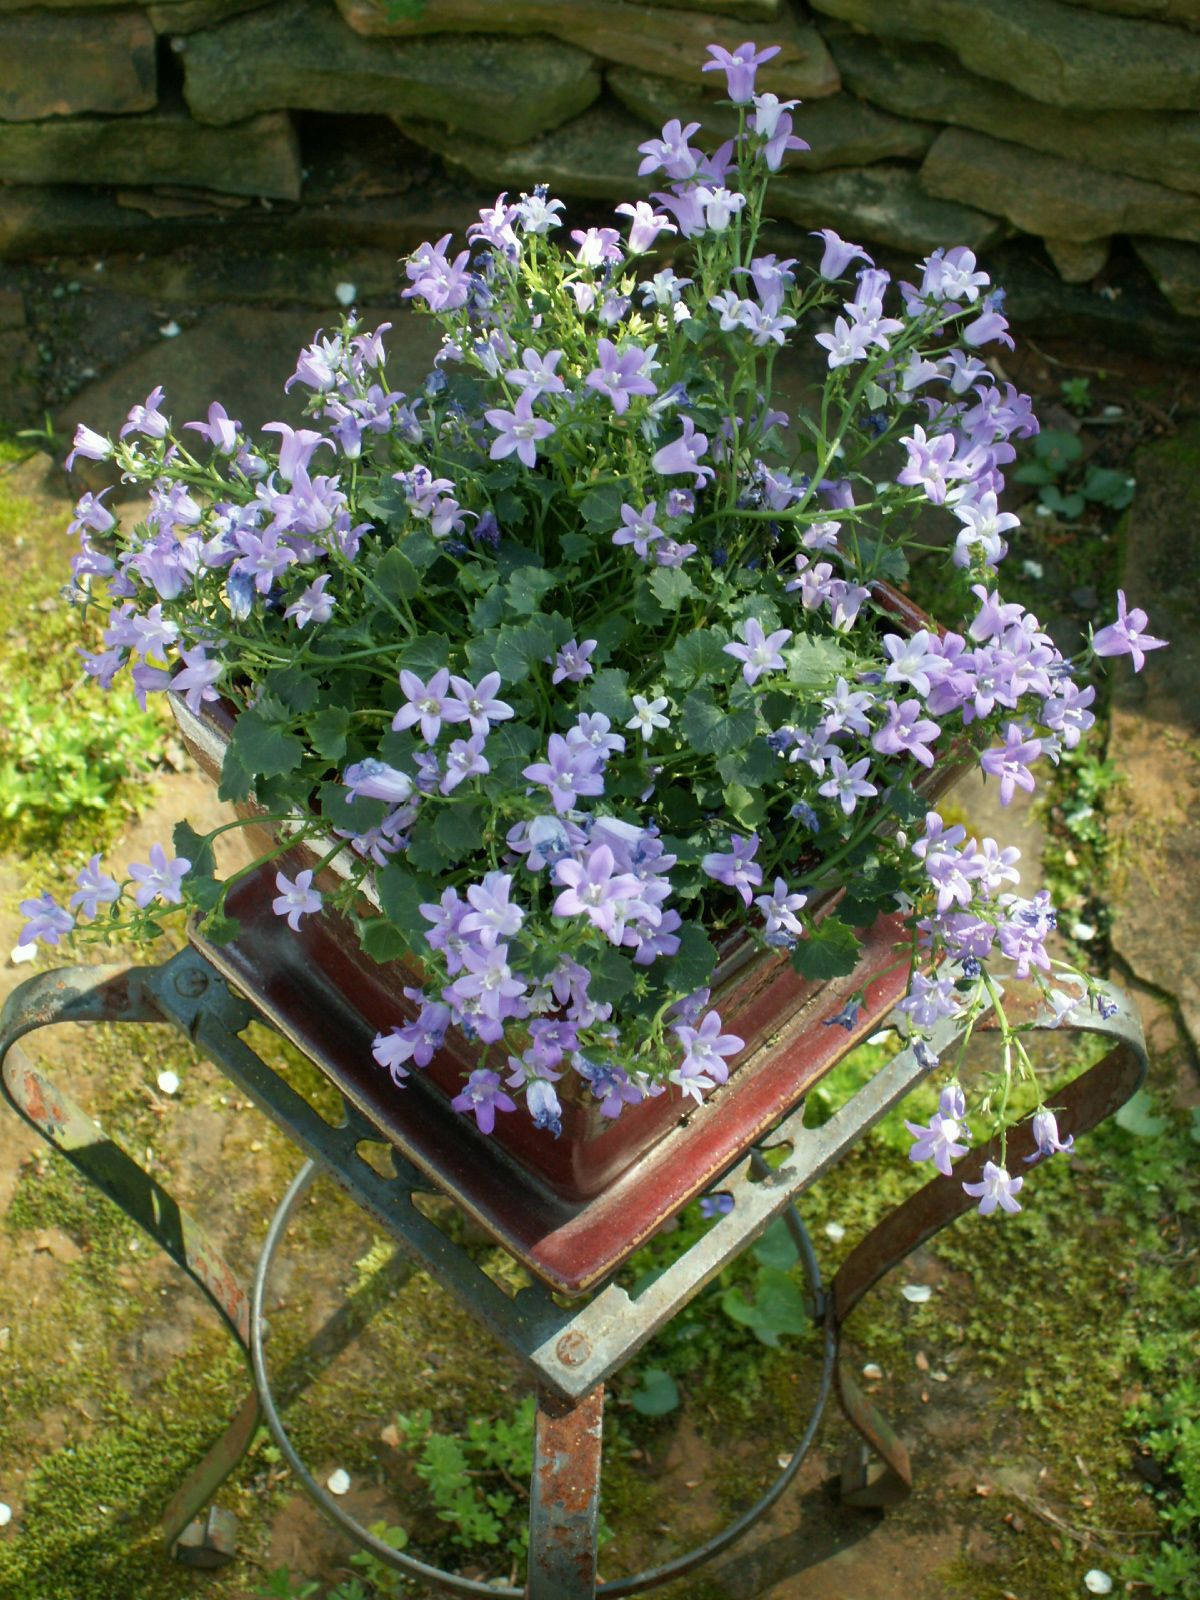 Campanula Bellflower The Creeping Crawling Kind Photo By S Wall These Lovely Bellshaped Flowers Are Sold Regularly At My Tr Bellflower Campanula Plants